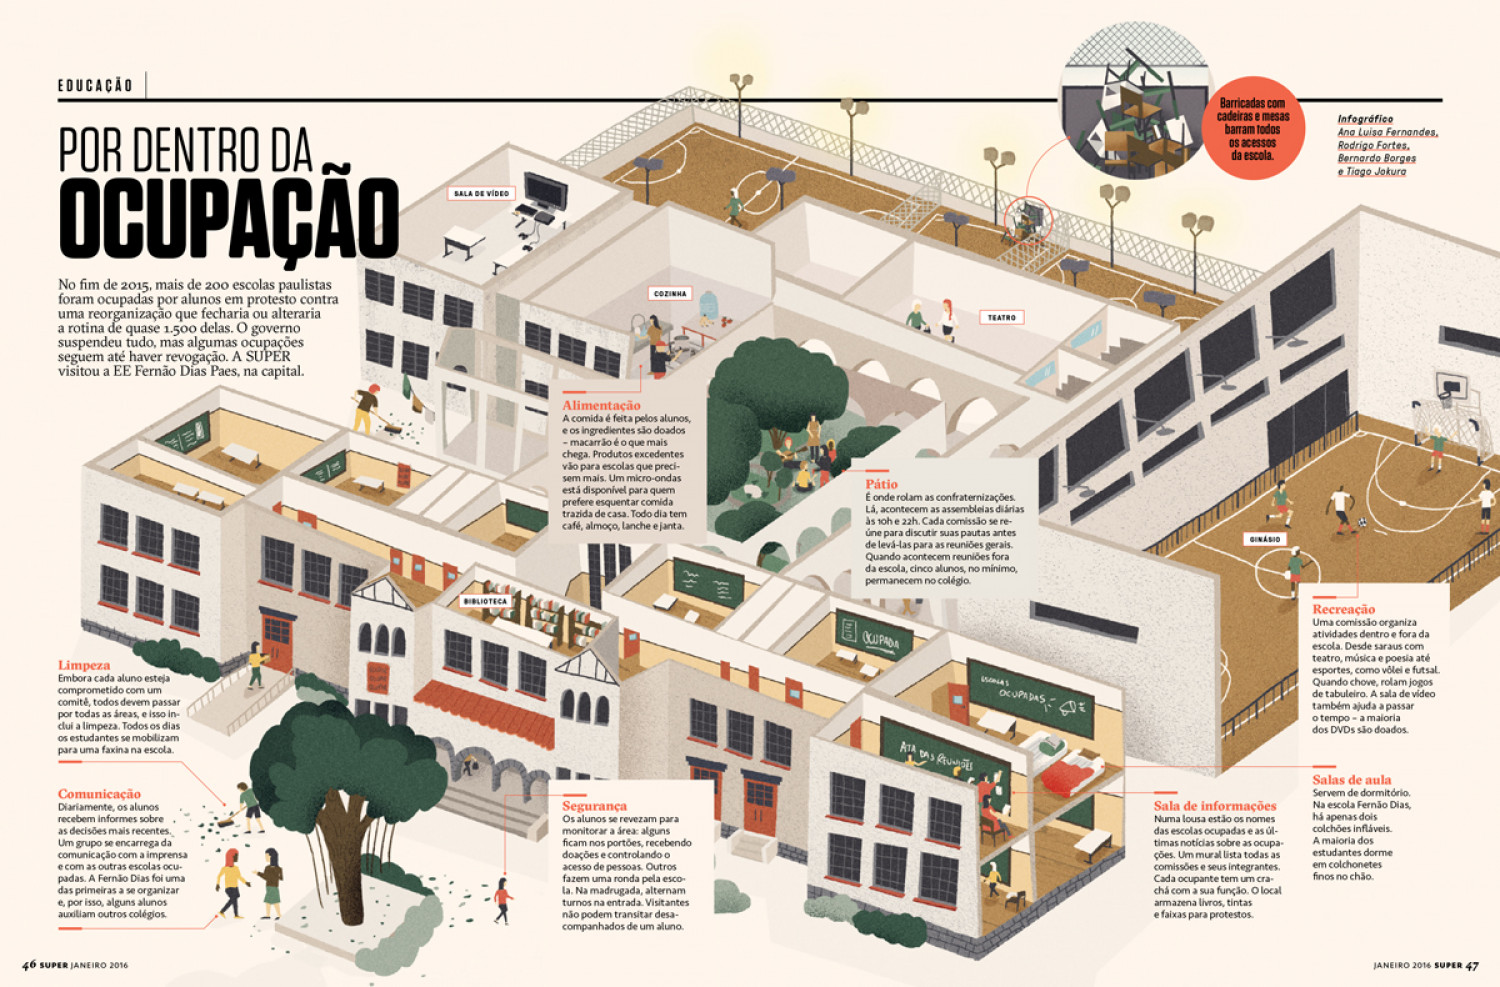 Inside the school Infographic